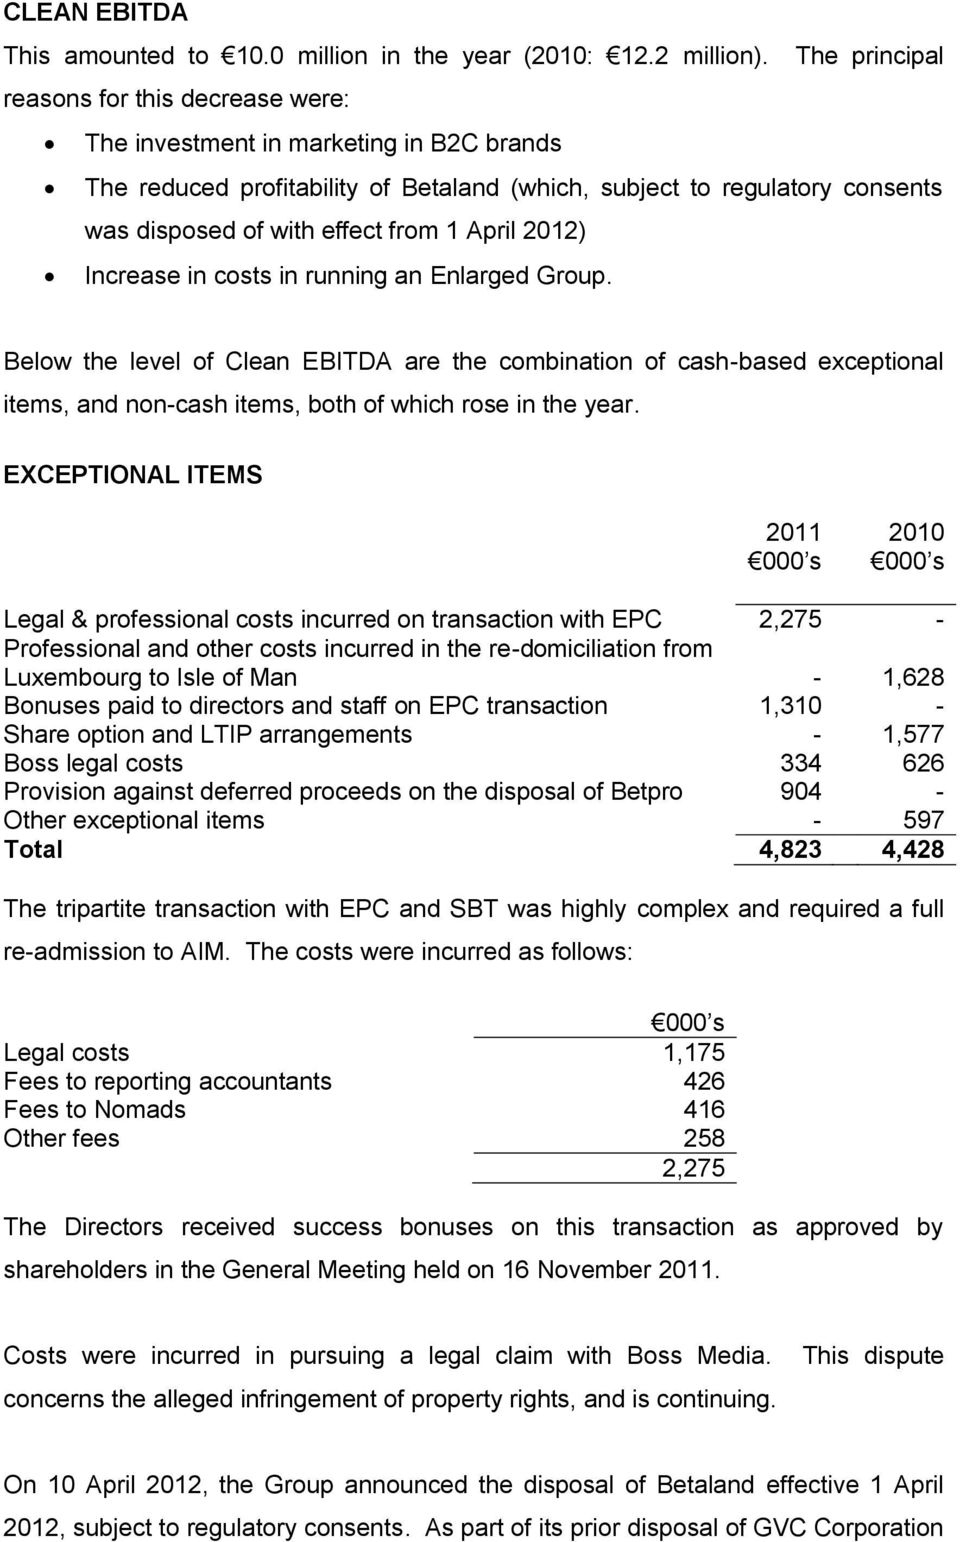 April 2012) Increase in costs in running an Enlarged Group. Below the level of Clean EBITDA are the combination of cashbased exceptional items, and noncash items, both of which rose in the year.